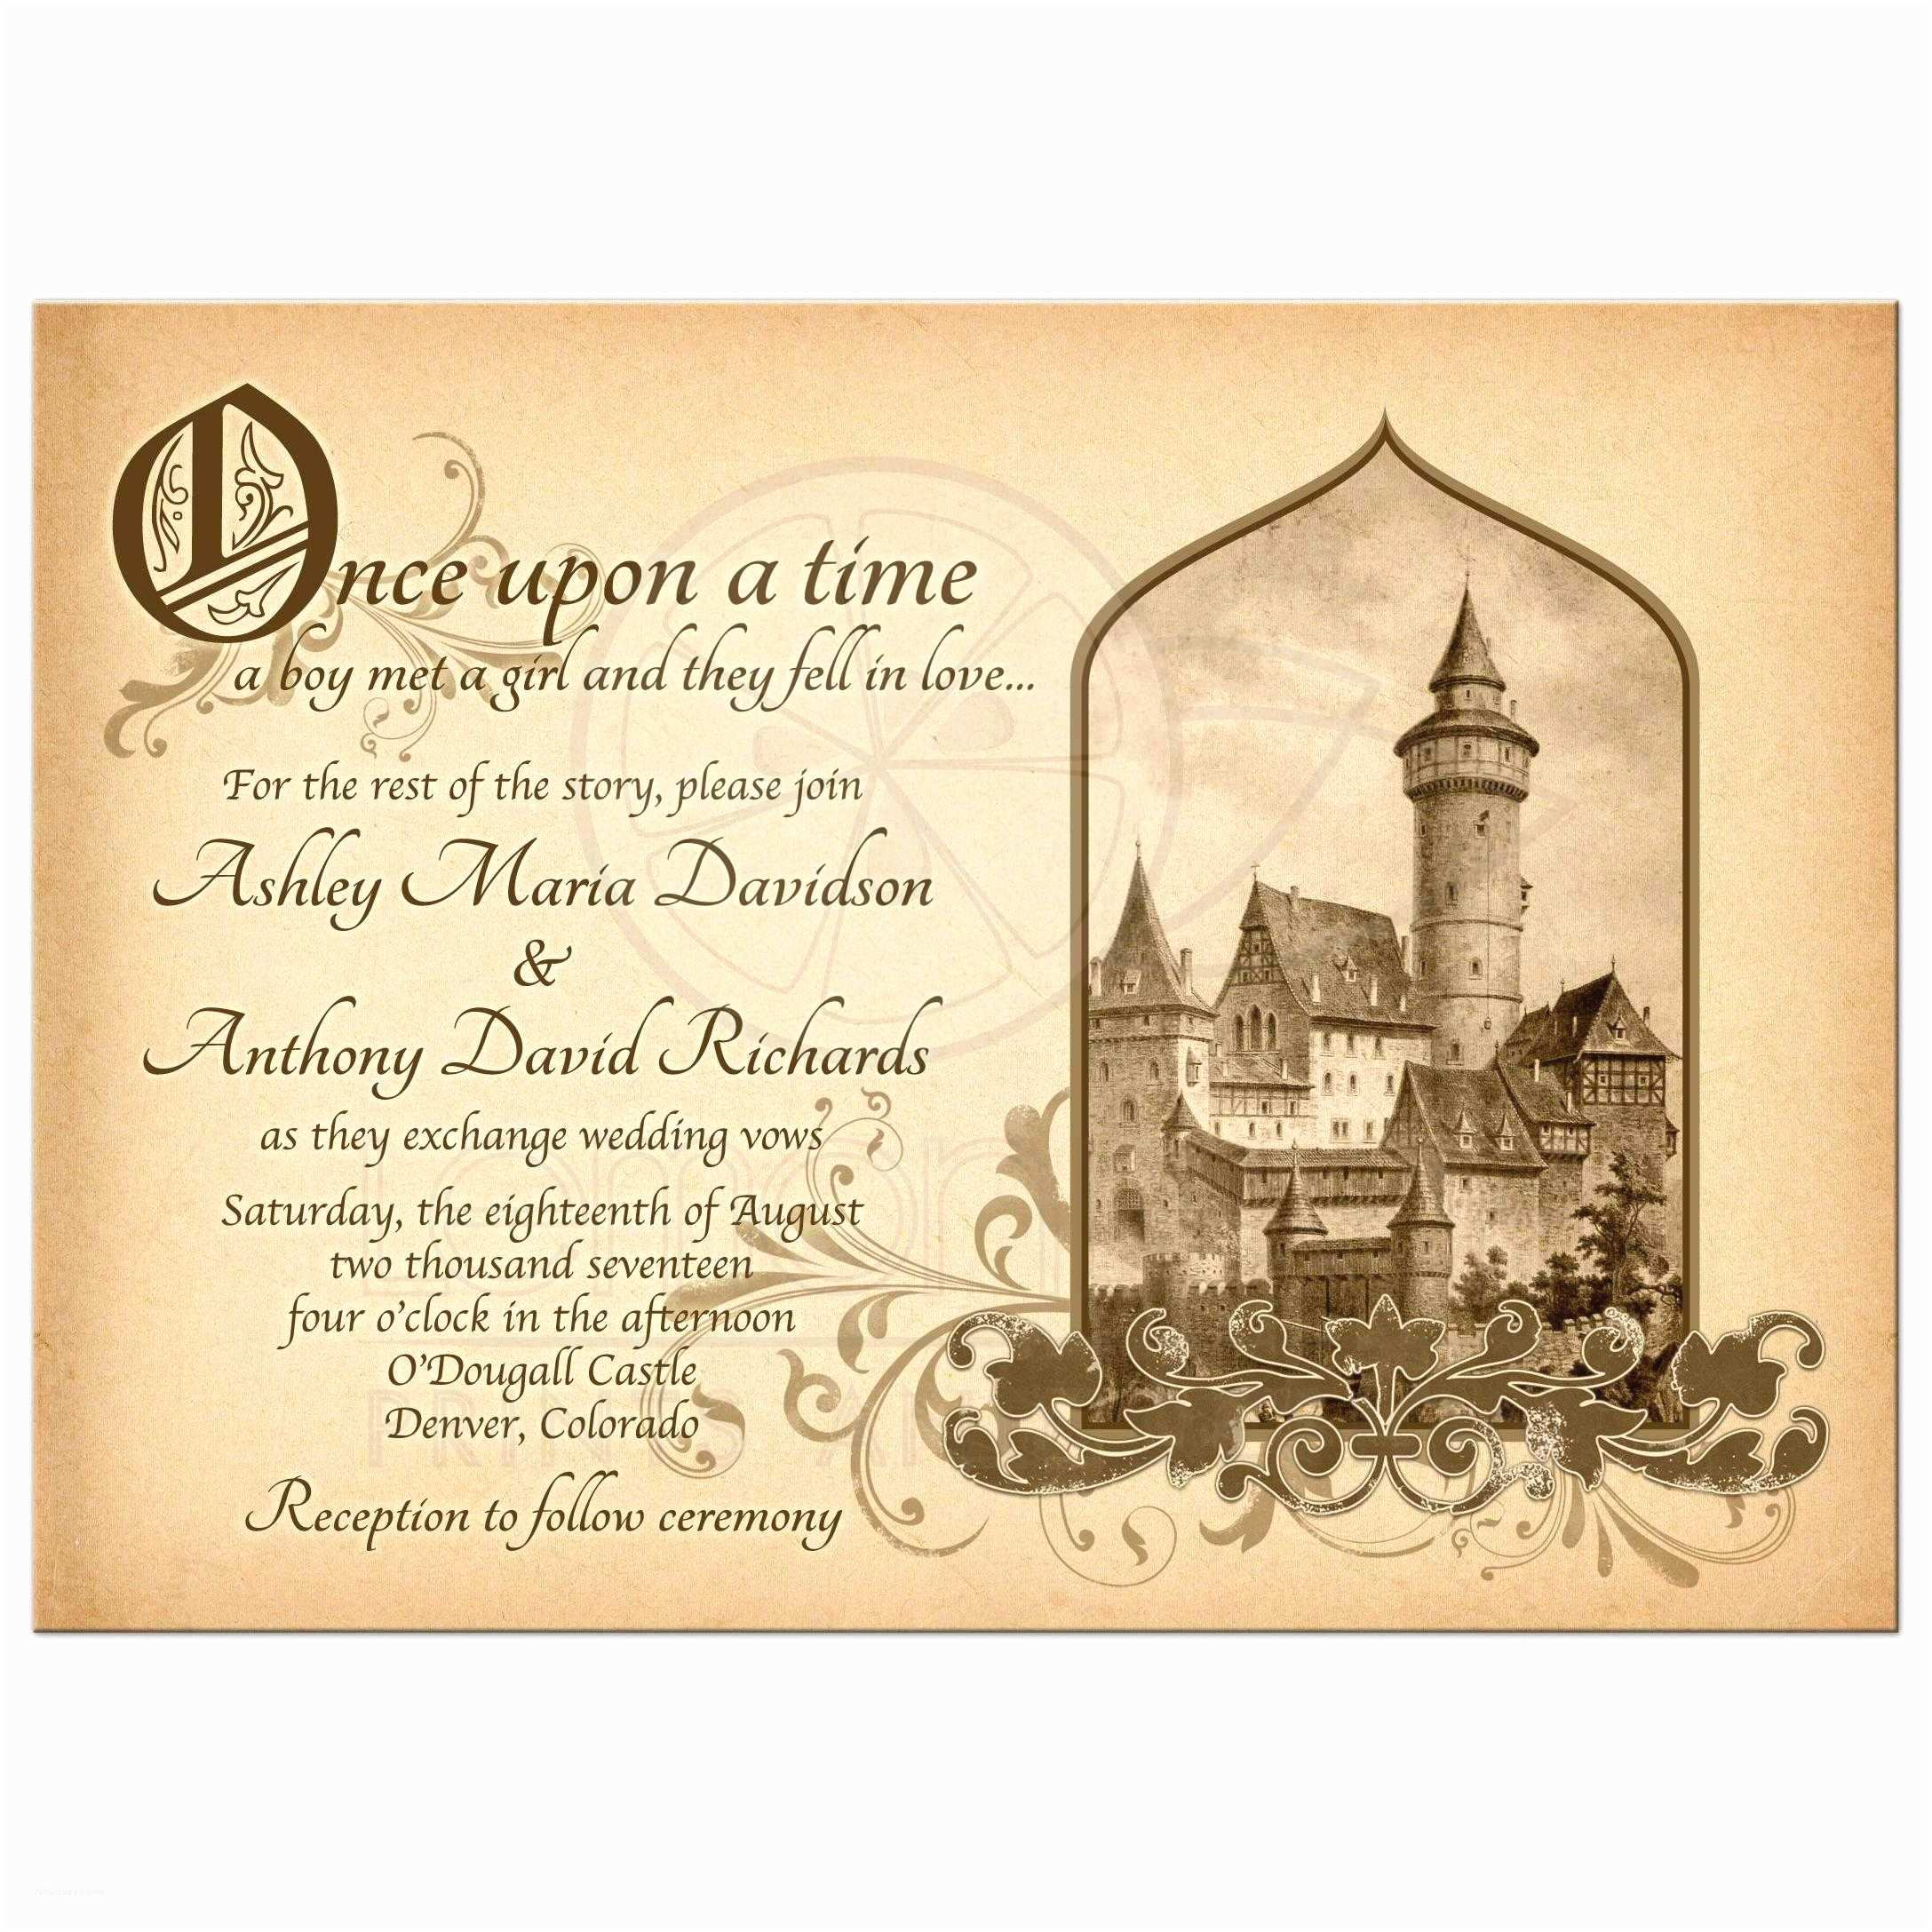 Wedding Invitation Time Emejing Ce Upon A Time Wedding Invitations Contemporary